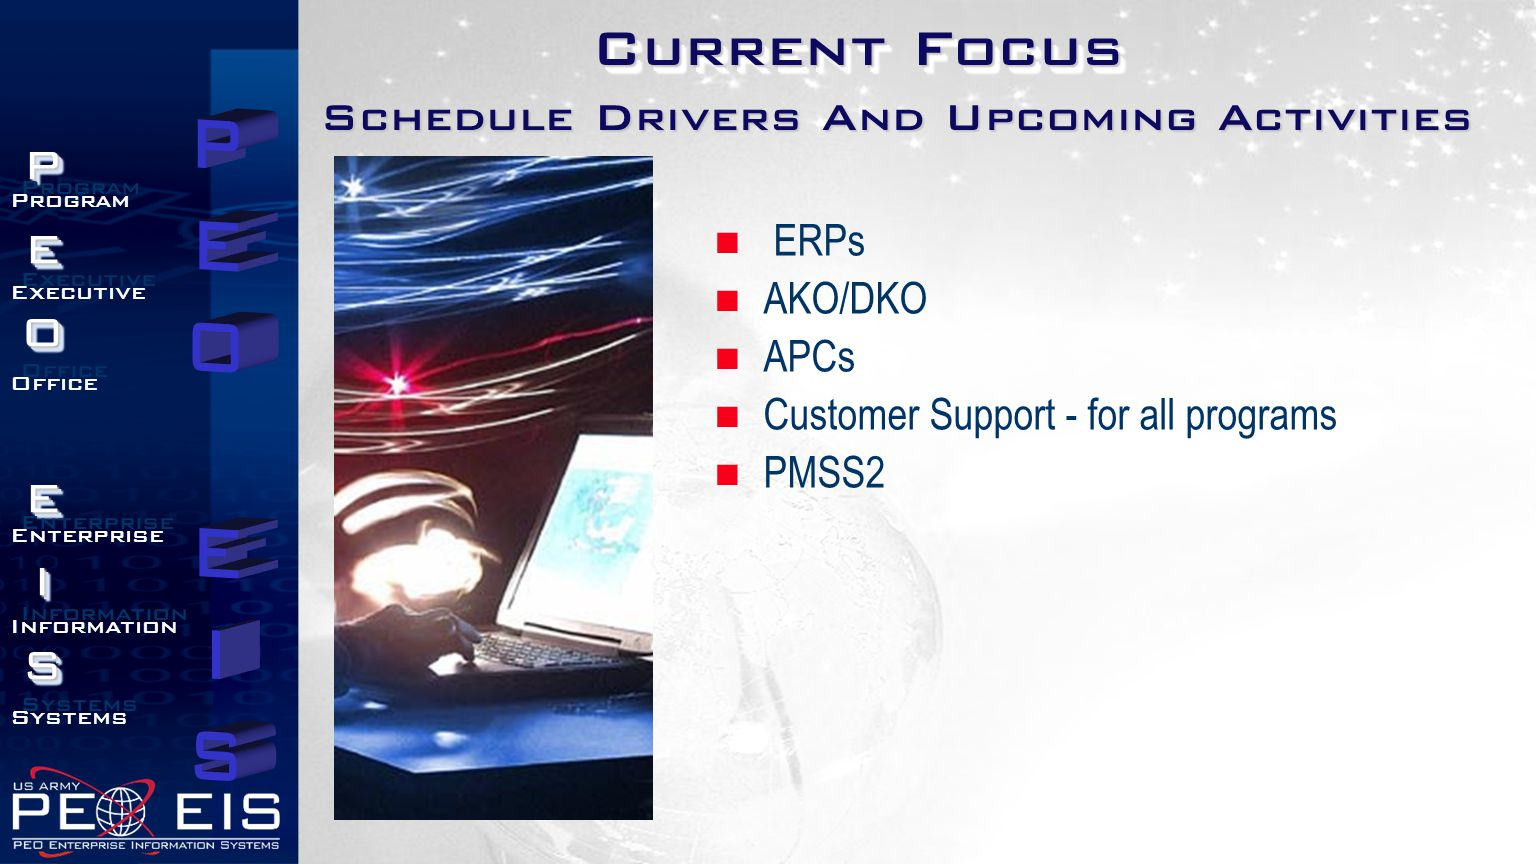 Current Focus Schedule Drivers And Upcoming Activities ERPs AKO/DKO